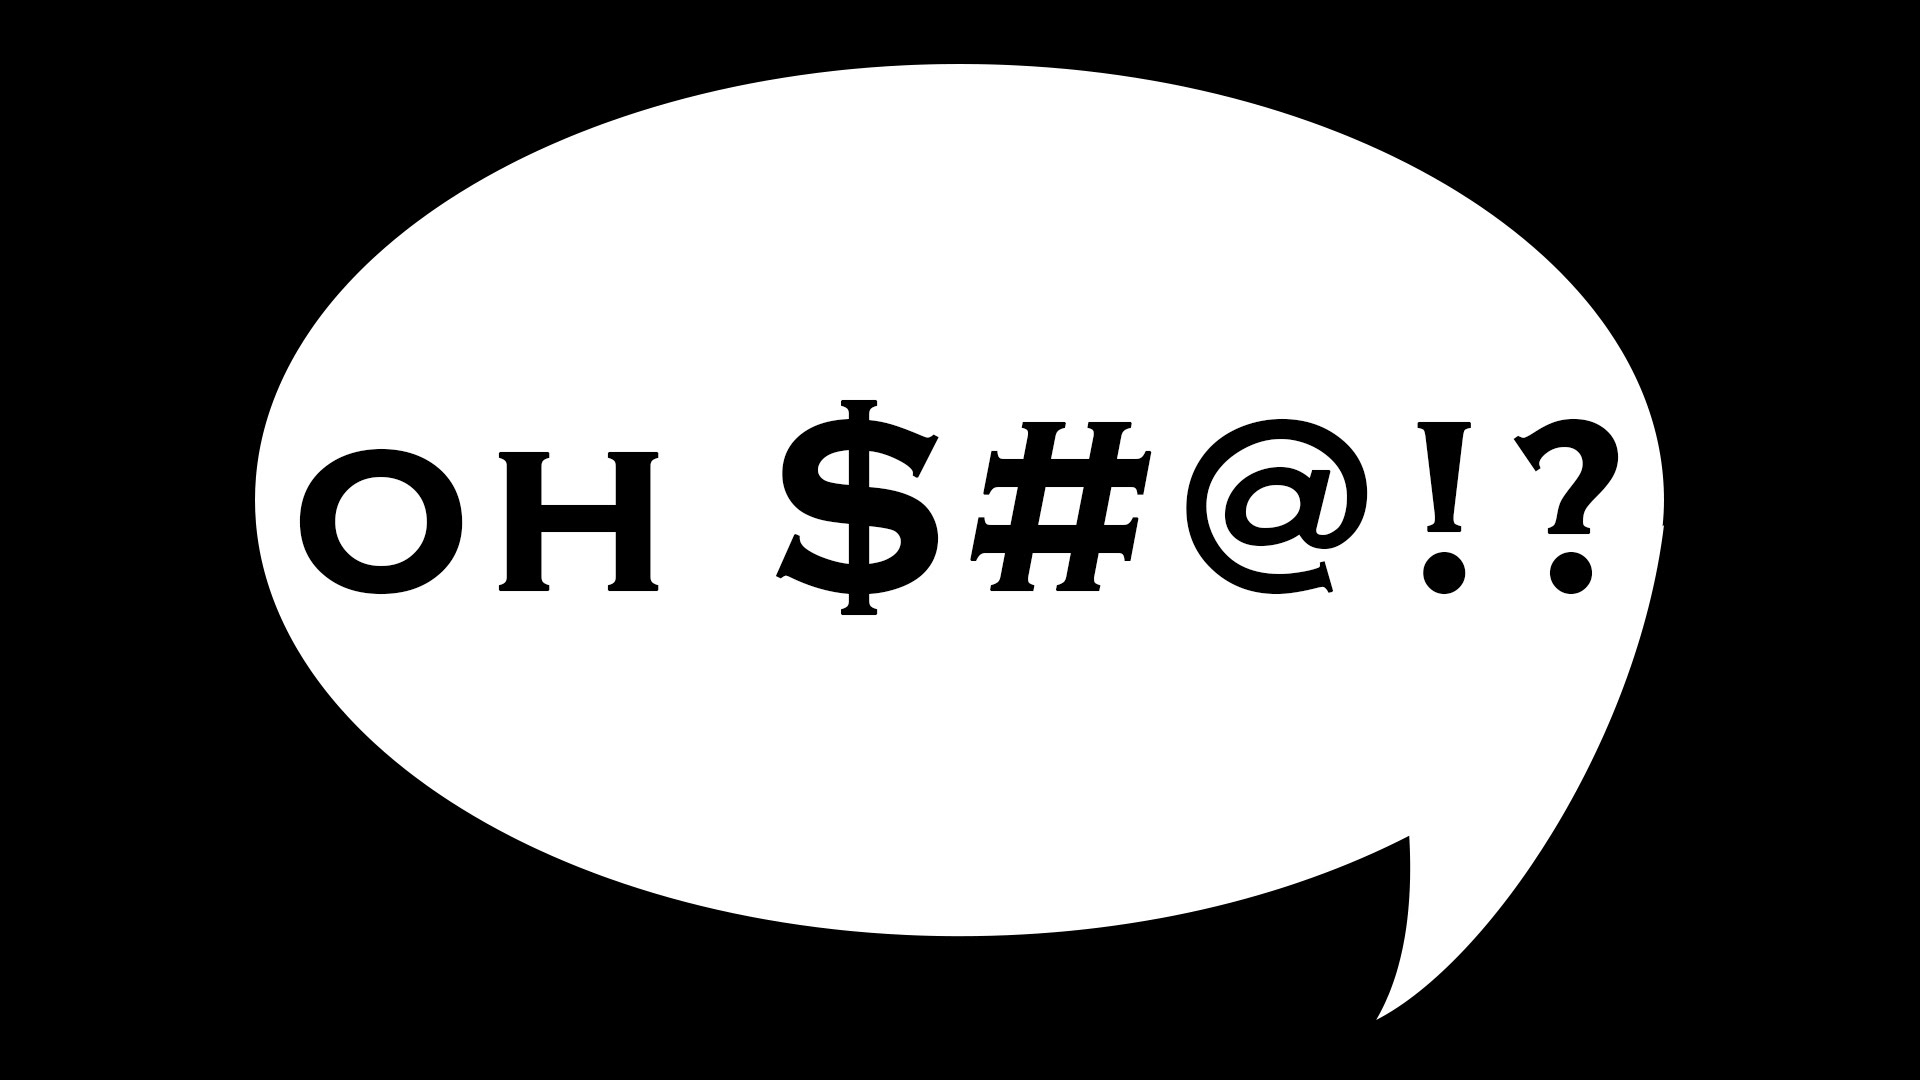 Why do we find ourselves using curse words?